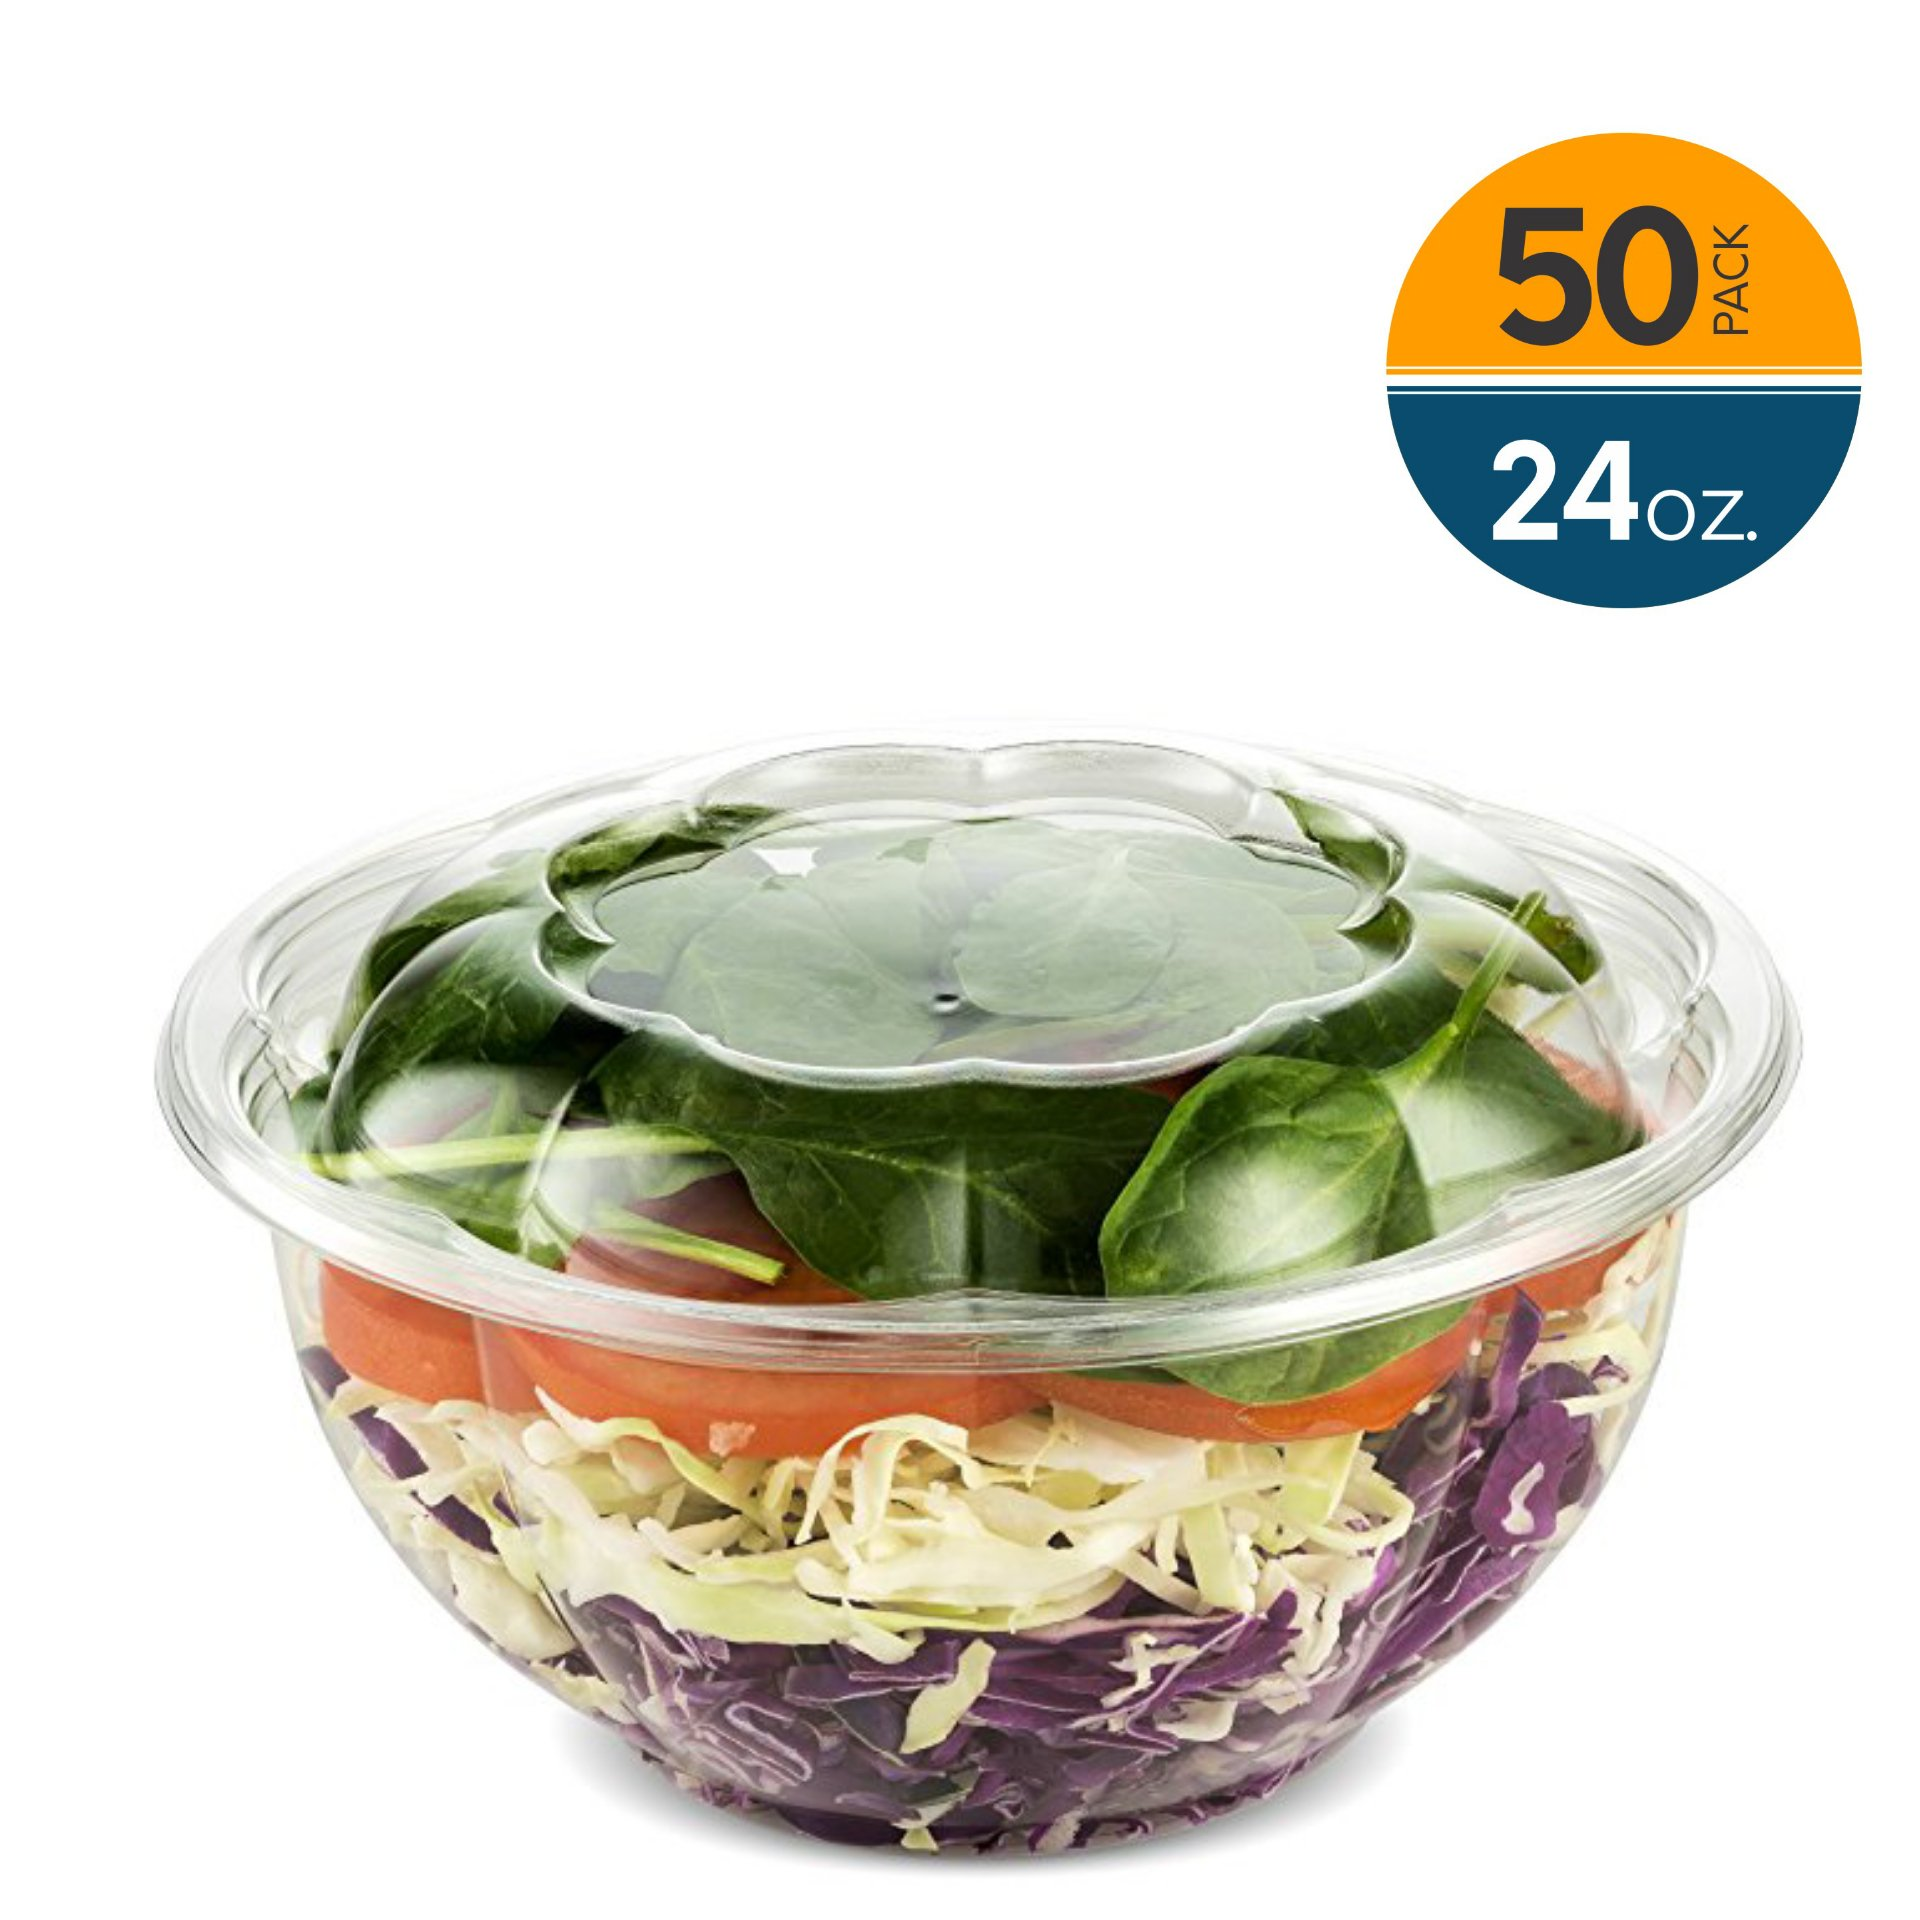 50 Pack Clear Plastic Disposable Salad Containers Set with Leak Proof Lids (24 Ounce) – Bulk Pack of Portable Salad To-Go Meal Prep Food Boxes - Fresh Airtight Seal - by NYHI Direct